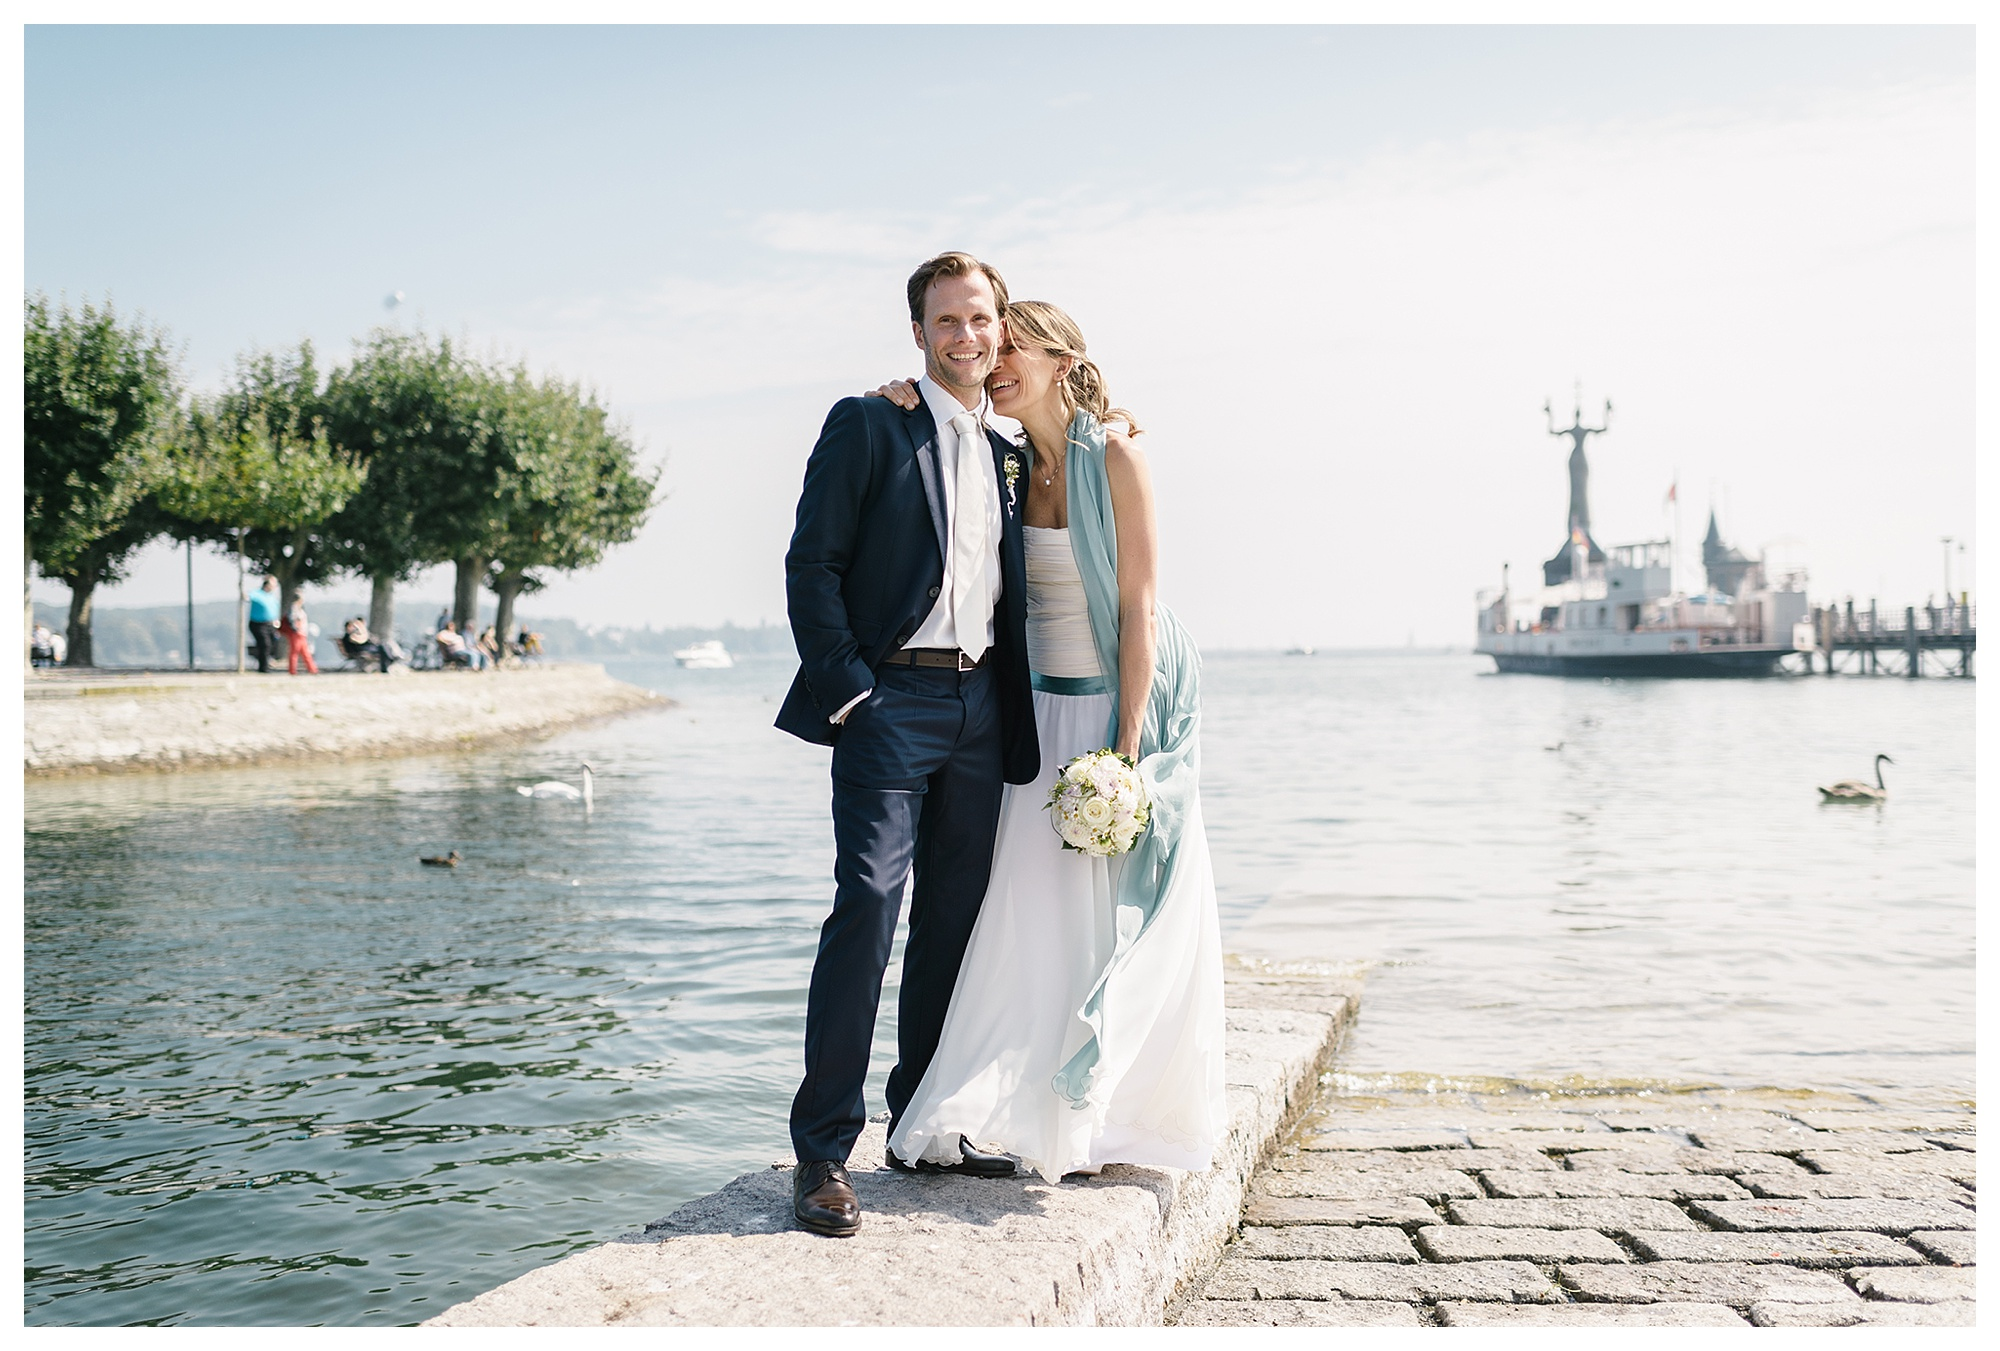 Fotograf Konstanz - Hochzeitsreportage Konstanz Raphael Nicole Elmar Feuerbacher Photography Hochzeit Portrait 20 - Wedding in Constance at Lake of Constance  - 56 -